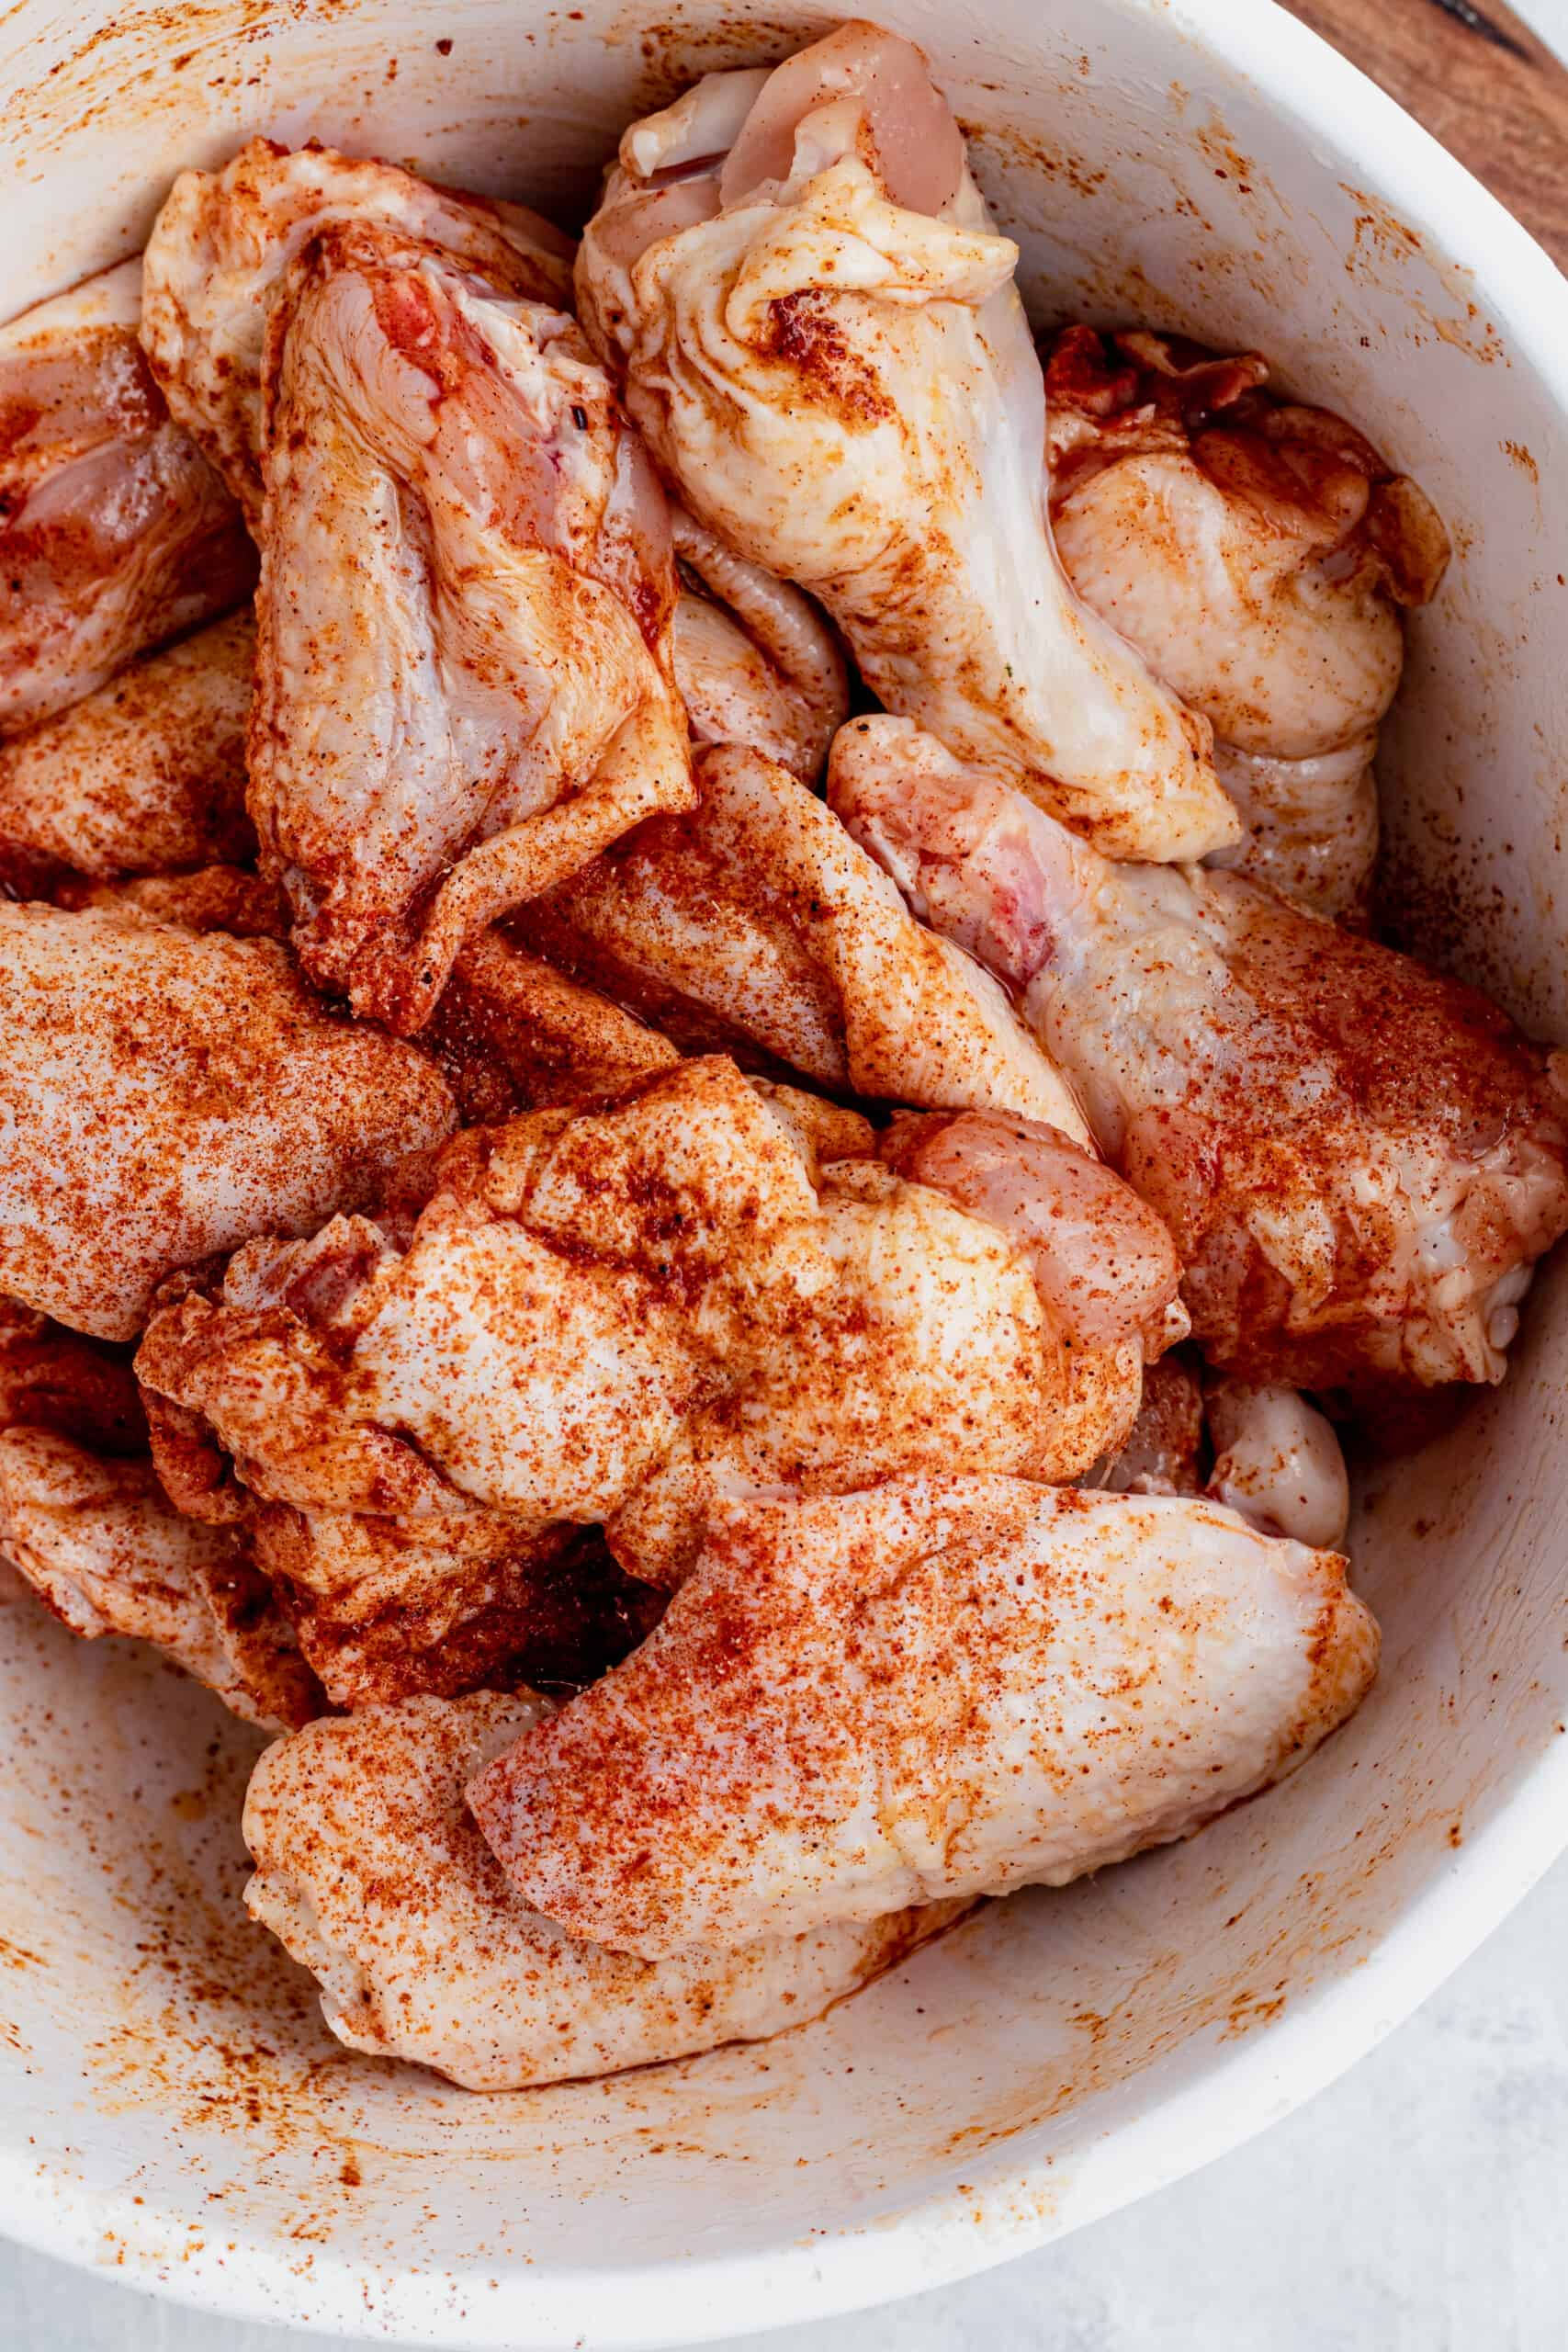 A Bowl of Raw Chicken Wings Coated in Spices